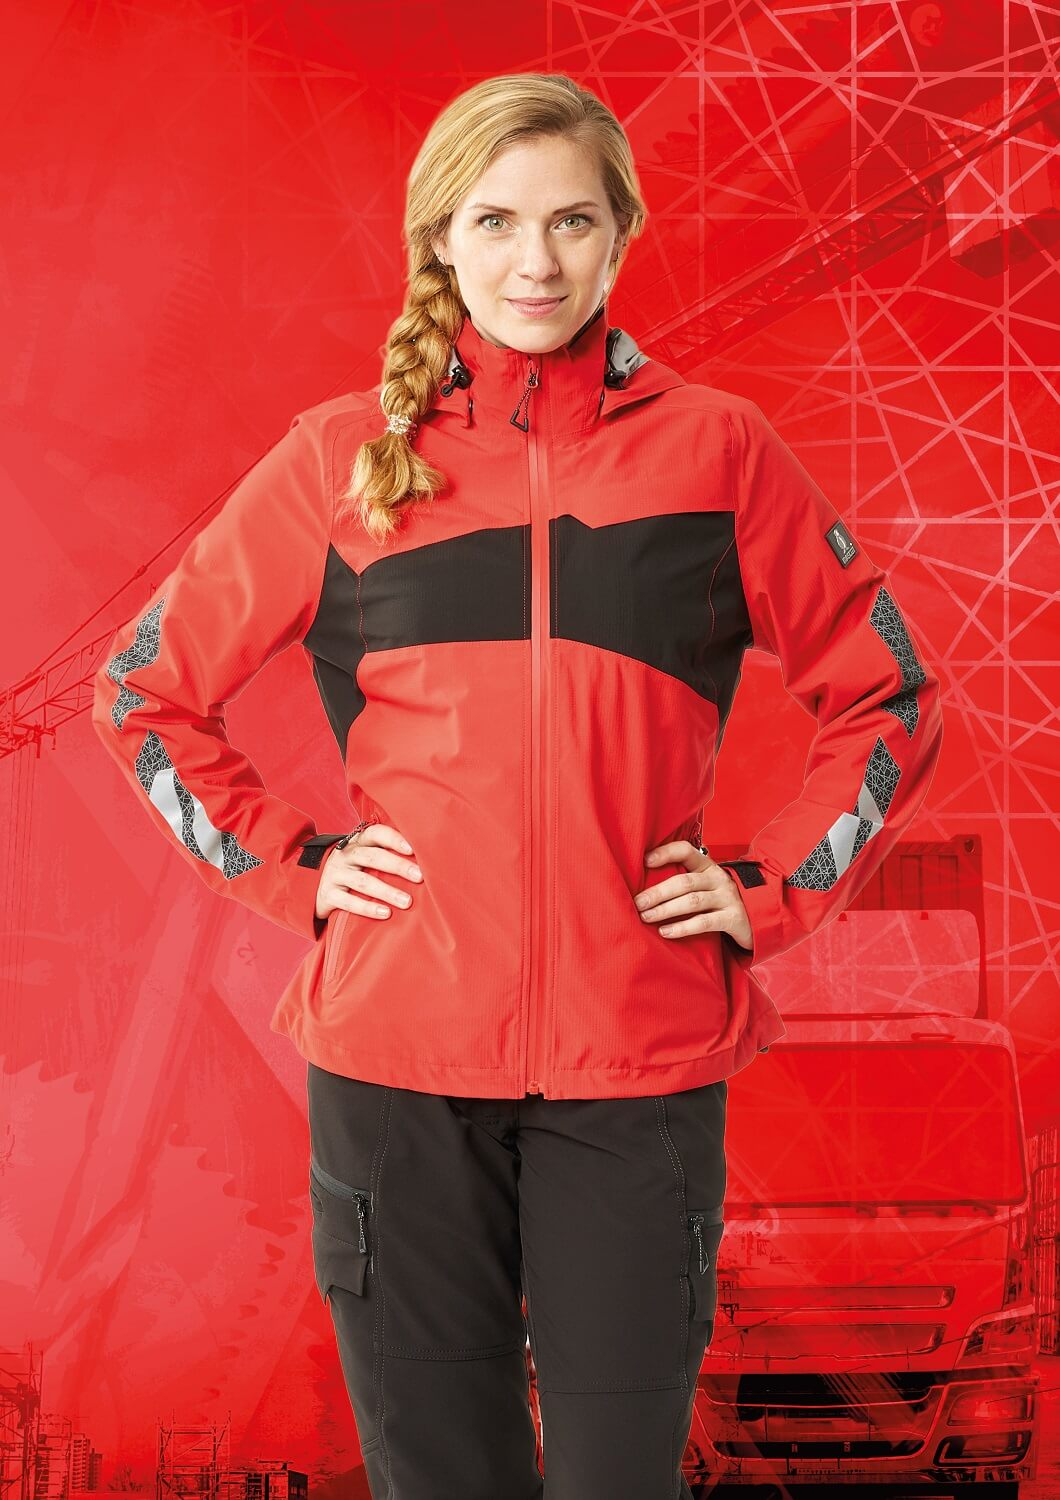 Trousers & Jacket for women  - Red - MASCOT® ACCELERATE